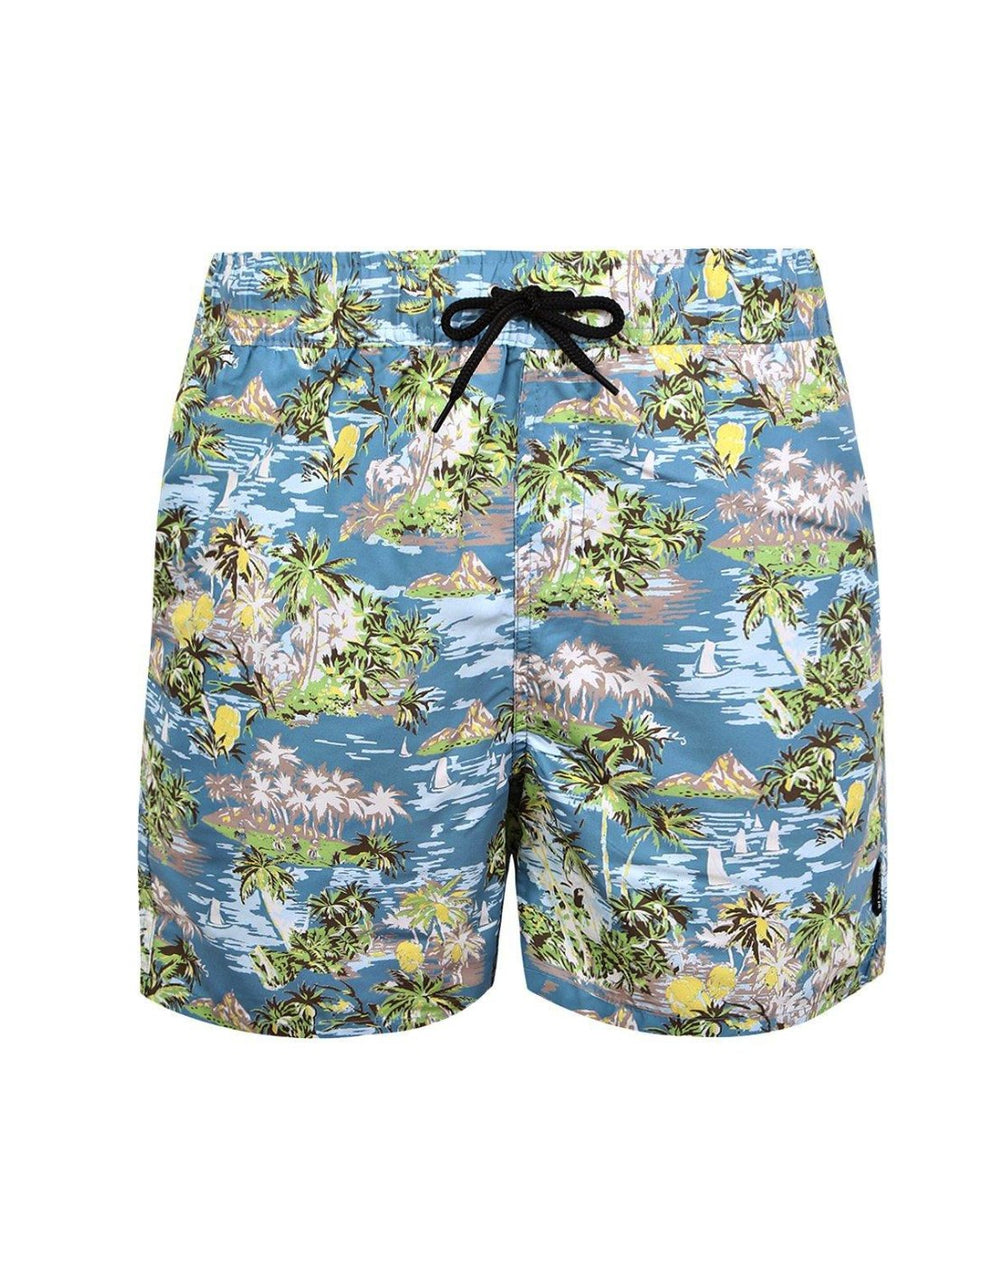 Shorts - Hawaiian Swim Shorts